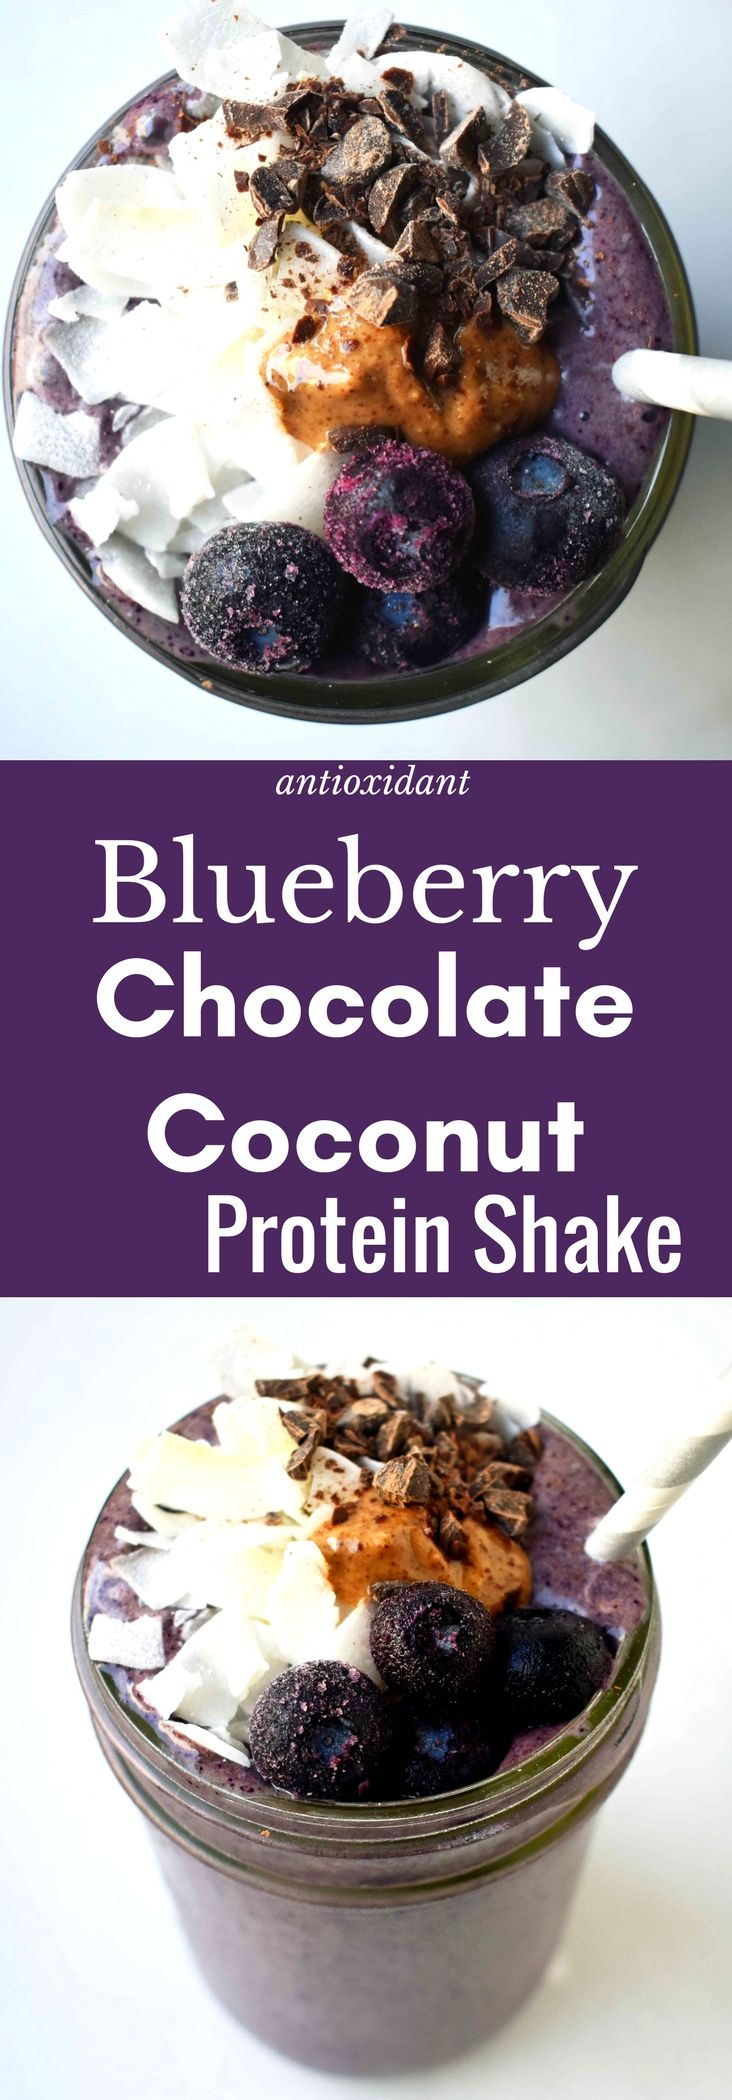 Antioxidant Rich Blueberry Chocolate Coconut Protein Shake made with powerful superfoods. A nutritious smoothie made with unsweetened coconut milk, frozen wild blueberries, chocolate protein powder, almond butter, banana, cacao powder, and topped with coconut flakes. A filling, vitamin packed breakfast to give you energy all day long. www.modernhoney.com